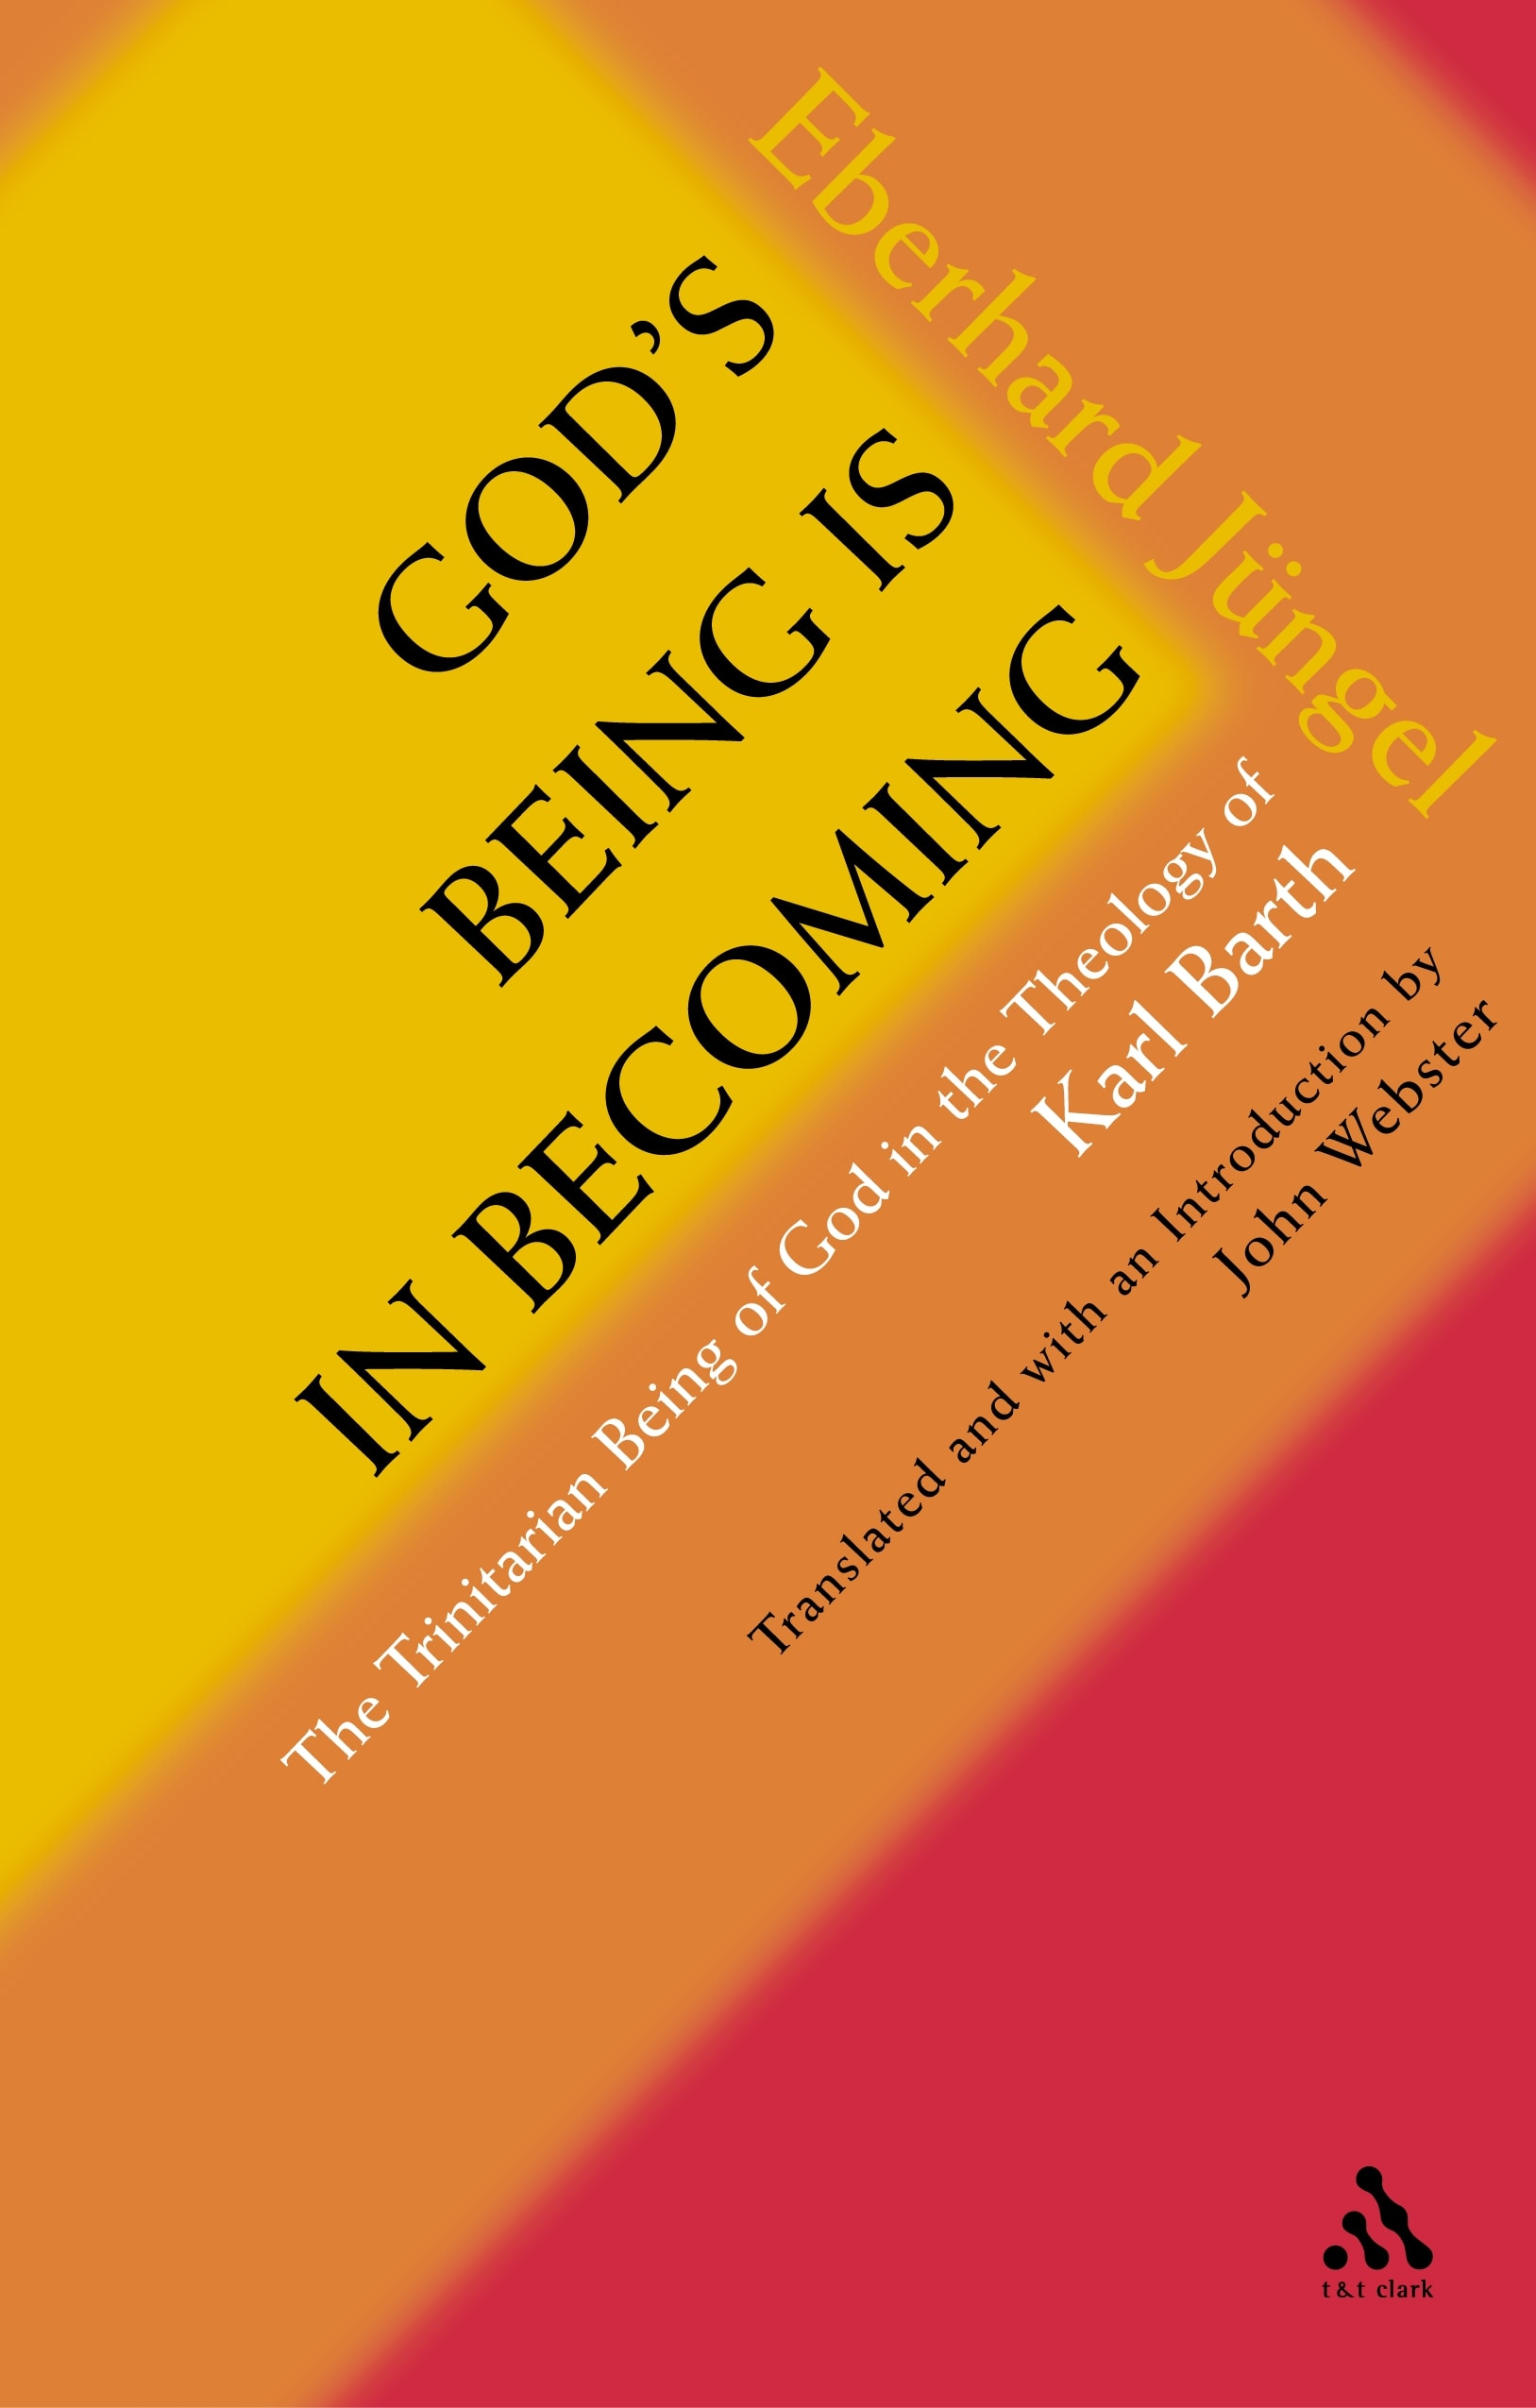 Book cover for Eberhard Jüngel's God's Being is in Becoming (Bloomsbury Publishing